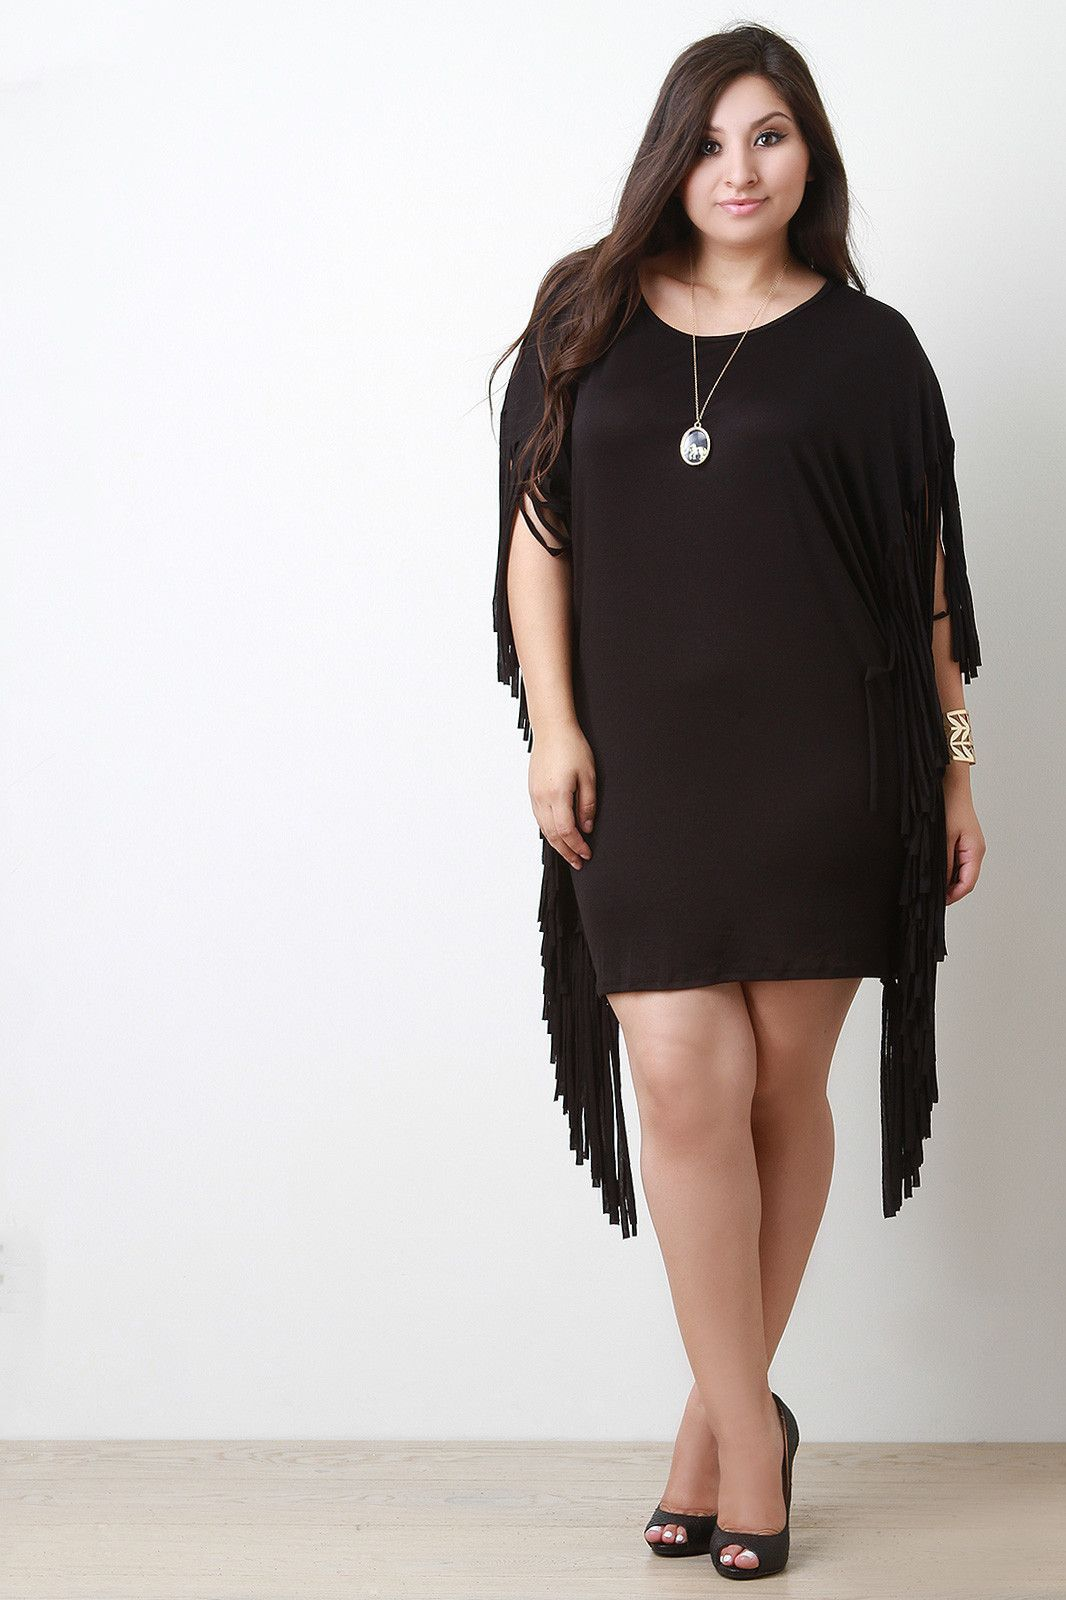 65ac54d0766 Description This plus size jersey knit dress features a round neckline